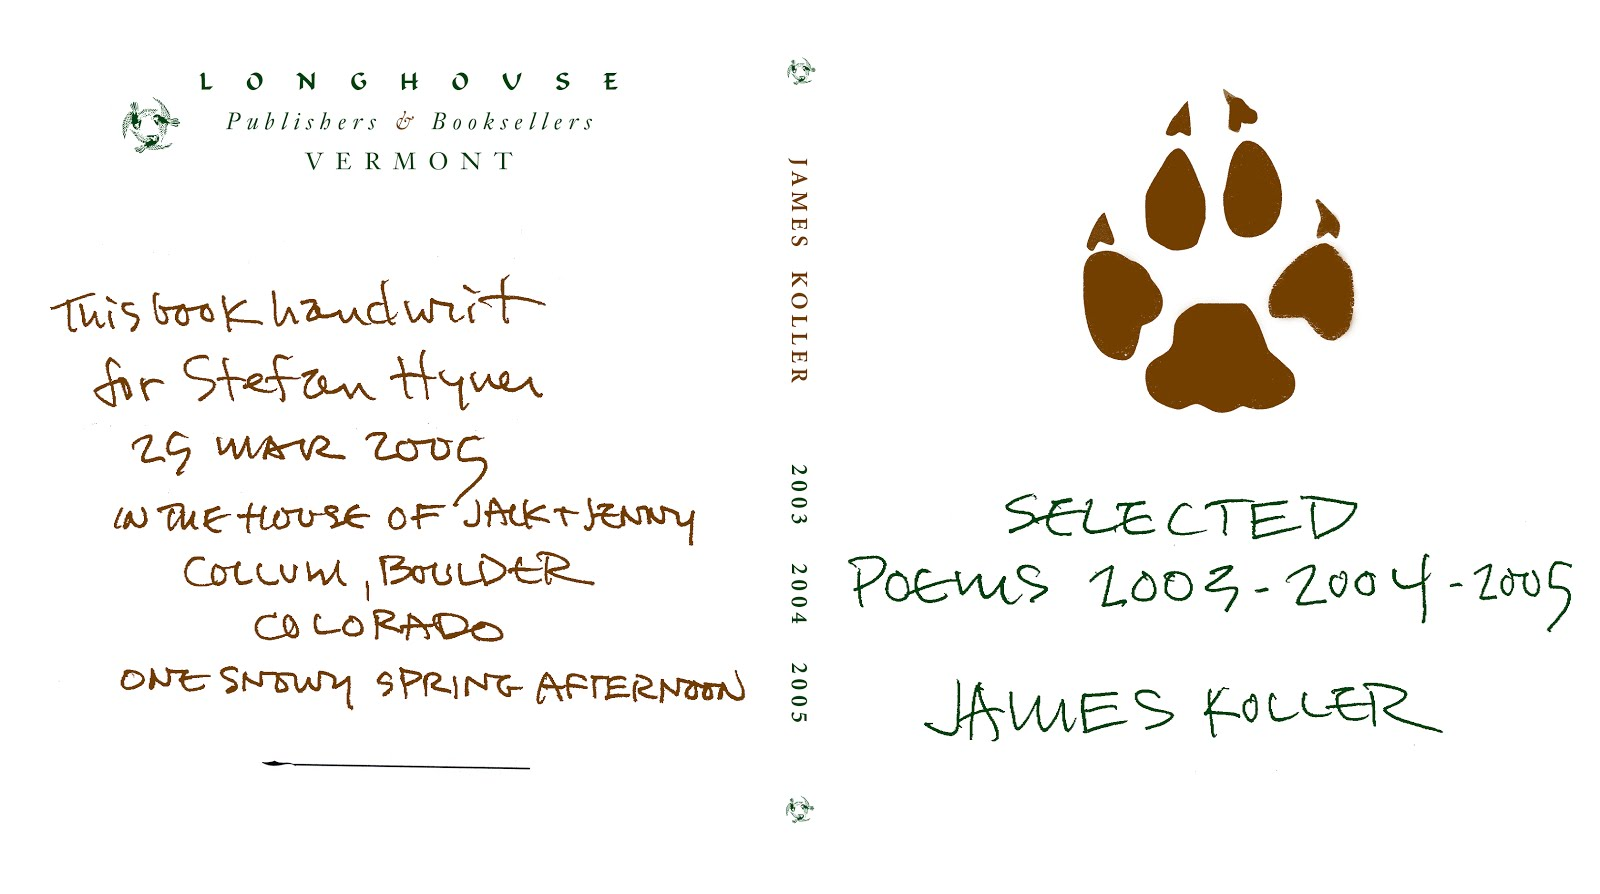 New! James Koller : Selected Poems  2003-2004-2005